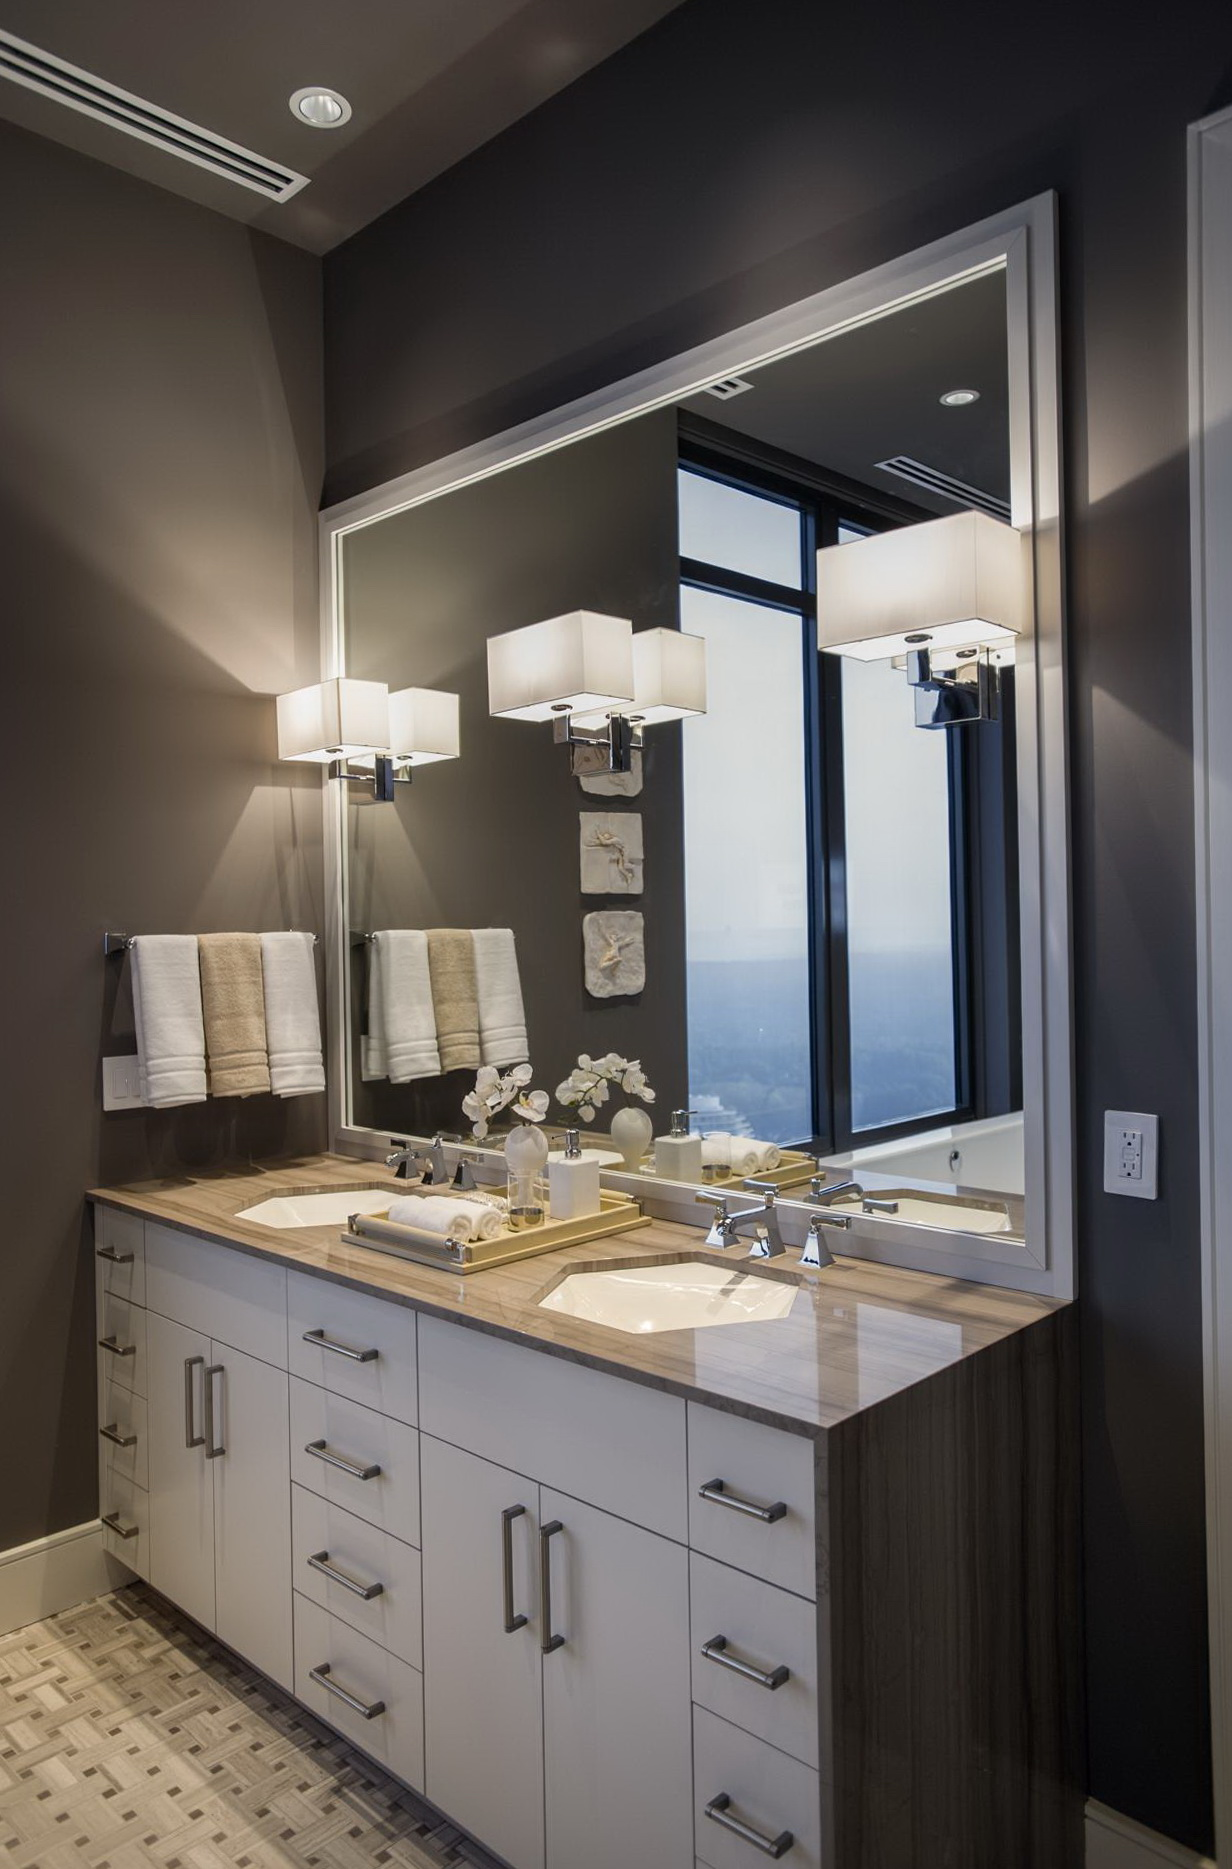 Bathroom Wall Sconces Height wall sconce height bathroom above sink | home design ideas